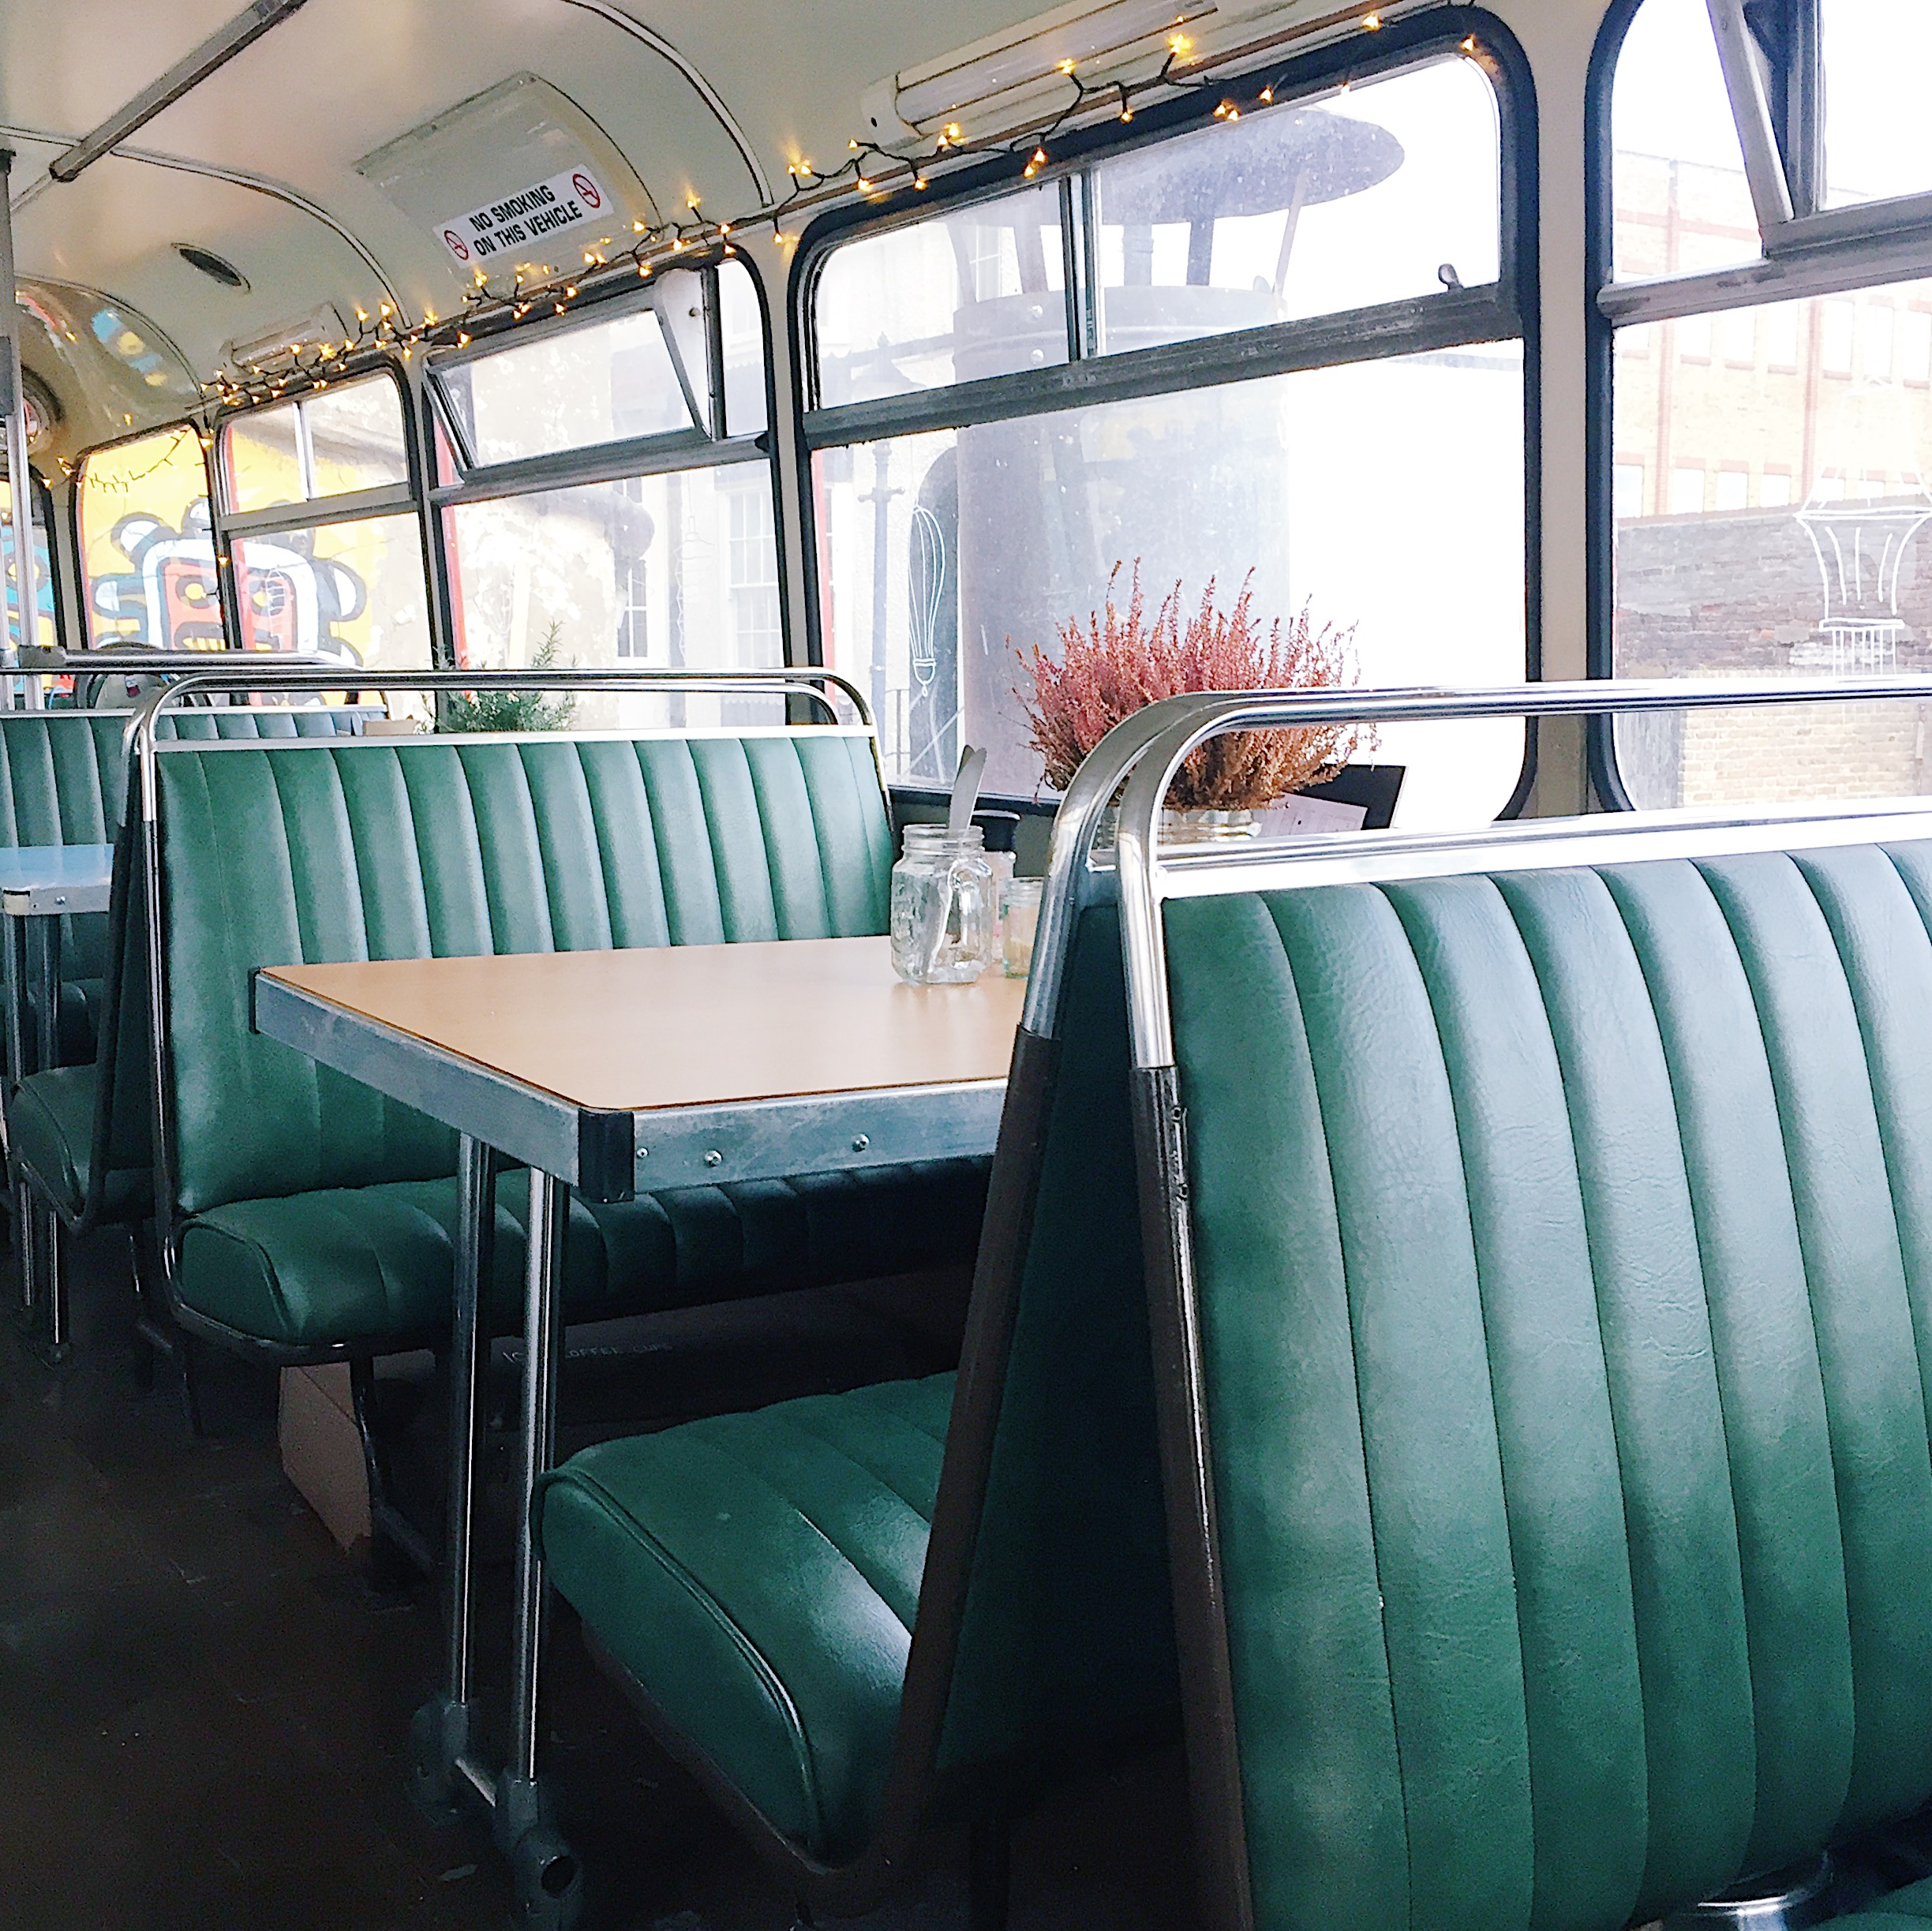 Bus Cafe Seats Margate.jpg